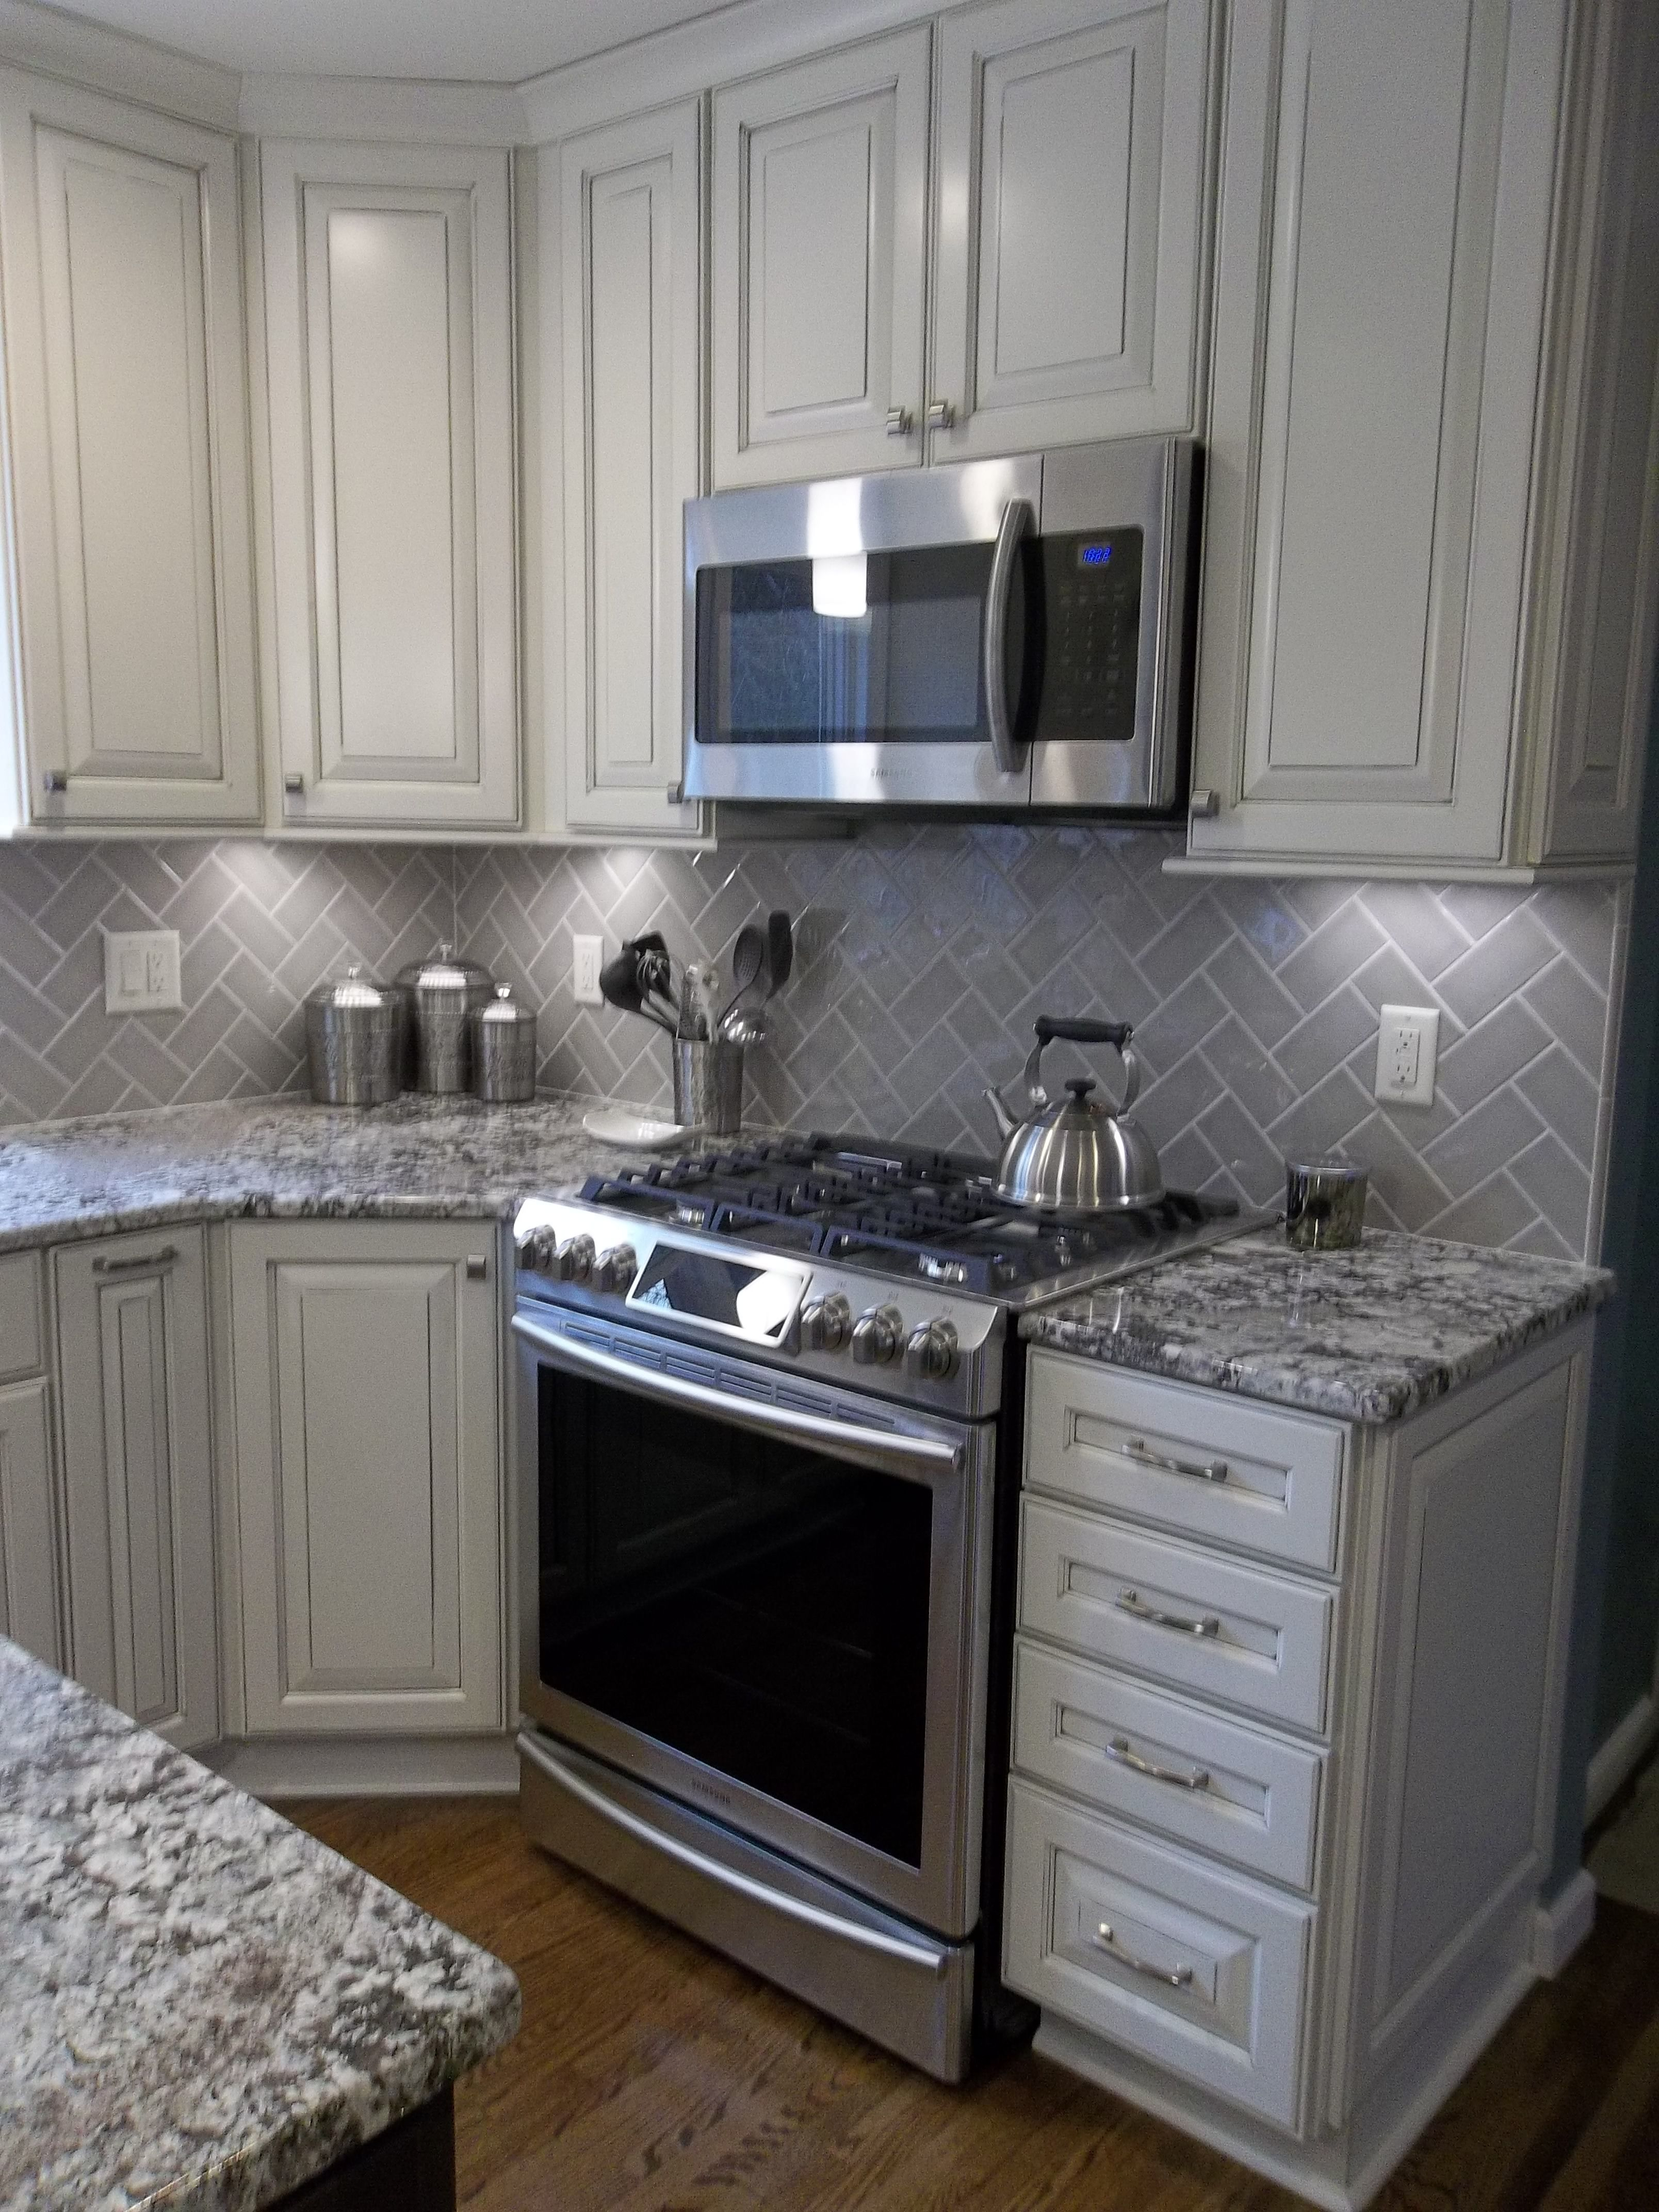 Check Out This Beautiful Kitchen Remodel Completed By Lowe S Project Specialist Of Interiors Jen Kitchen Remodel Small Kitchen Interior Kitchen Remodel Layout